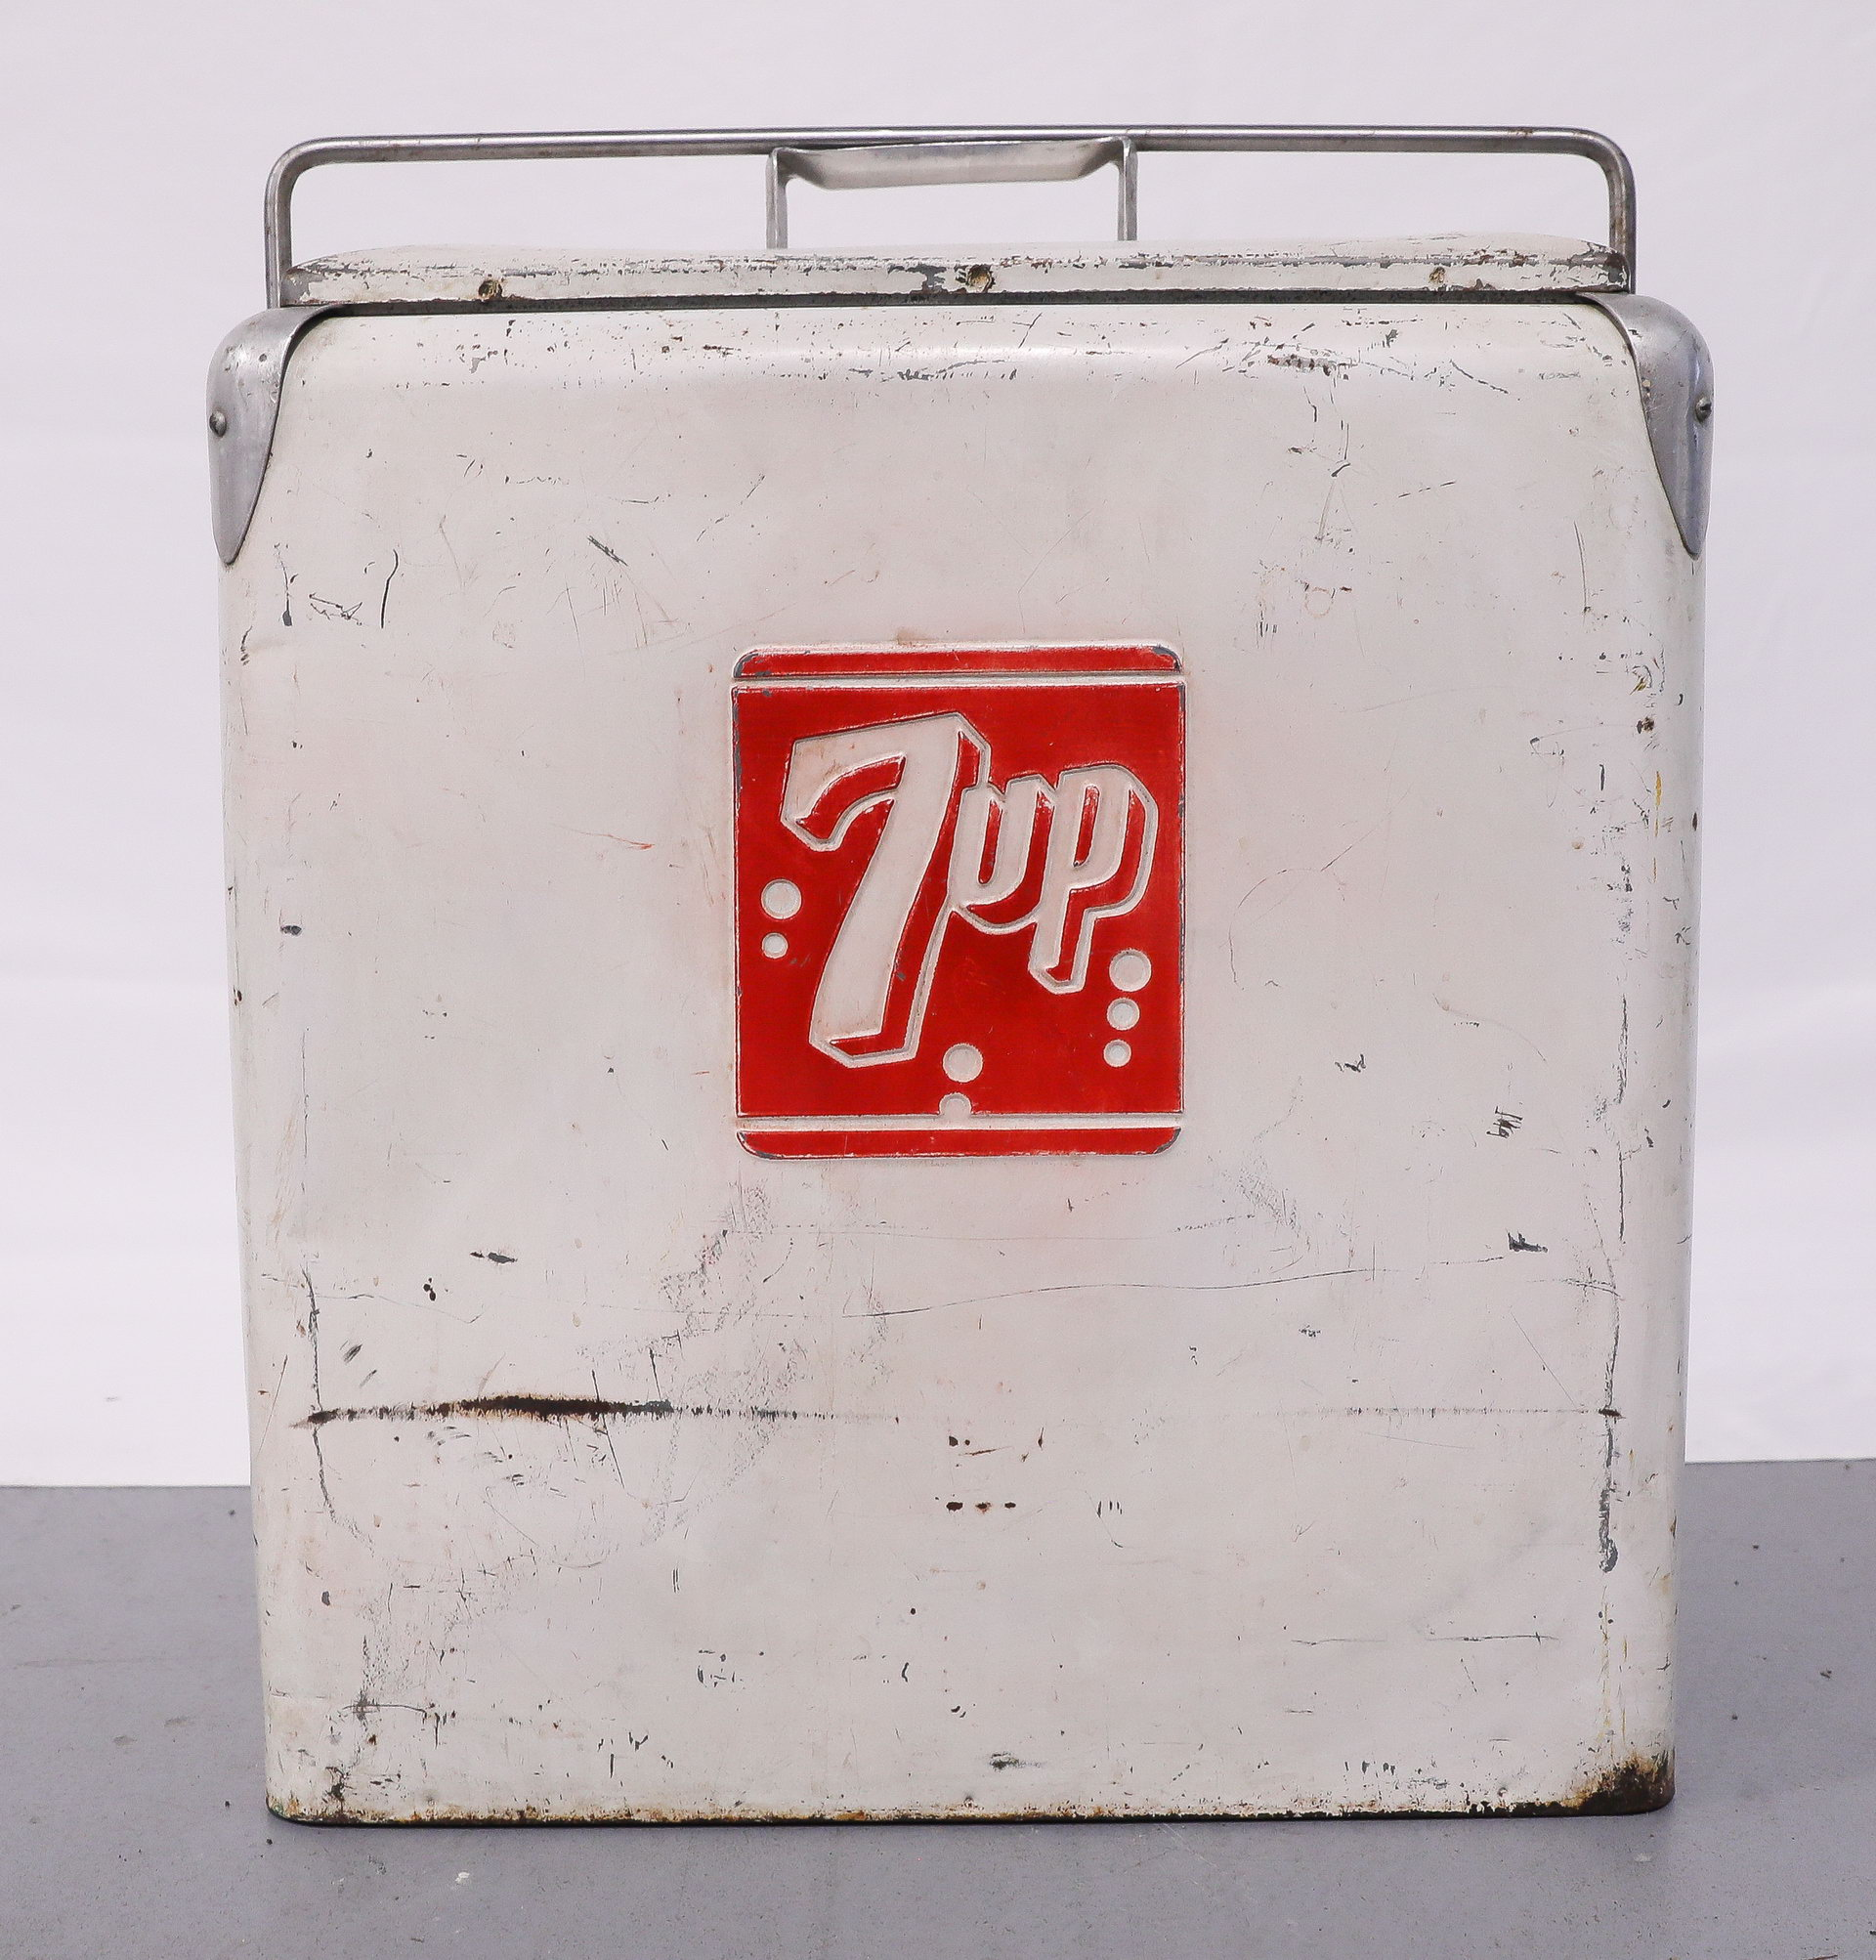 7-Up Embossed Metal Cooler Soda Chest Cooler with Tray